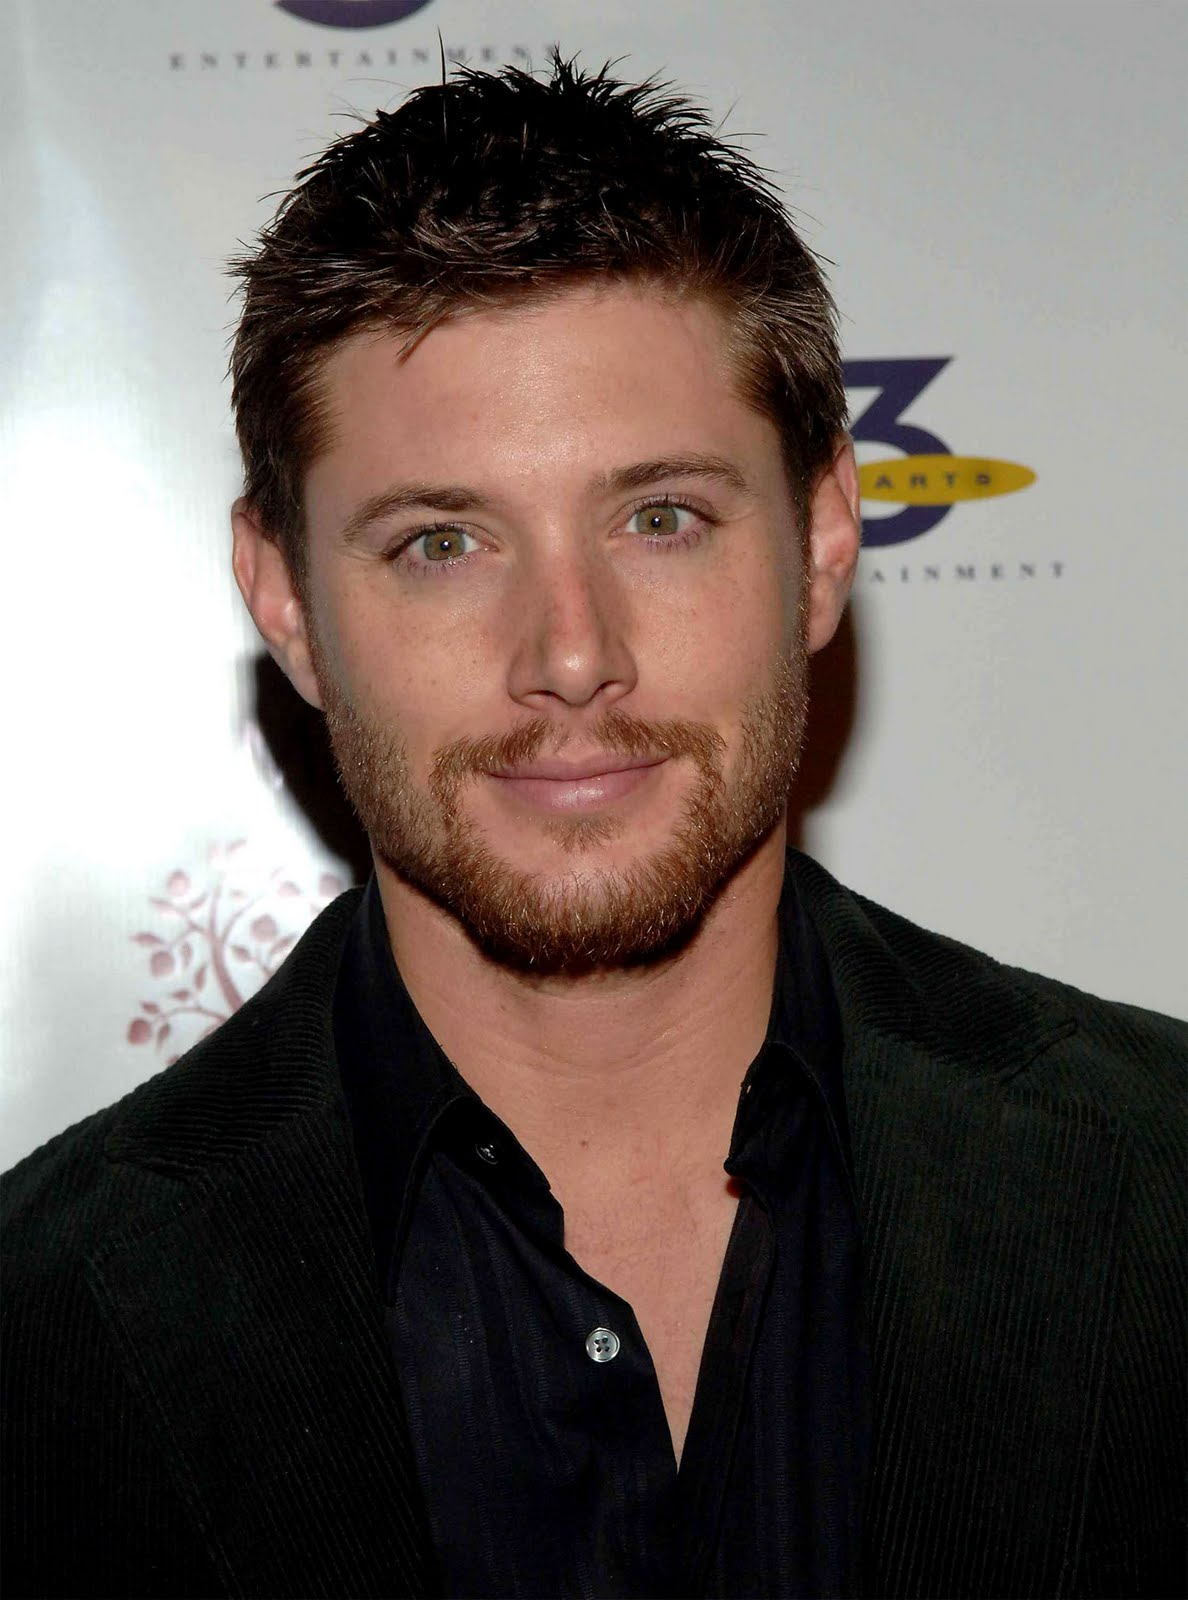 http://1.bp.blogspot.com/_foVZHWXYEFY/TCDS0u6IIaI/AAAAAAAAAkQ/LXsDkRoMLZ4/s1600/05-15-New-York-TV-Upfronts-After-Party-jensen-ackles-13203353-1500-2021.jpg